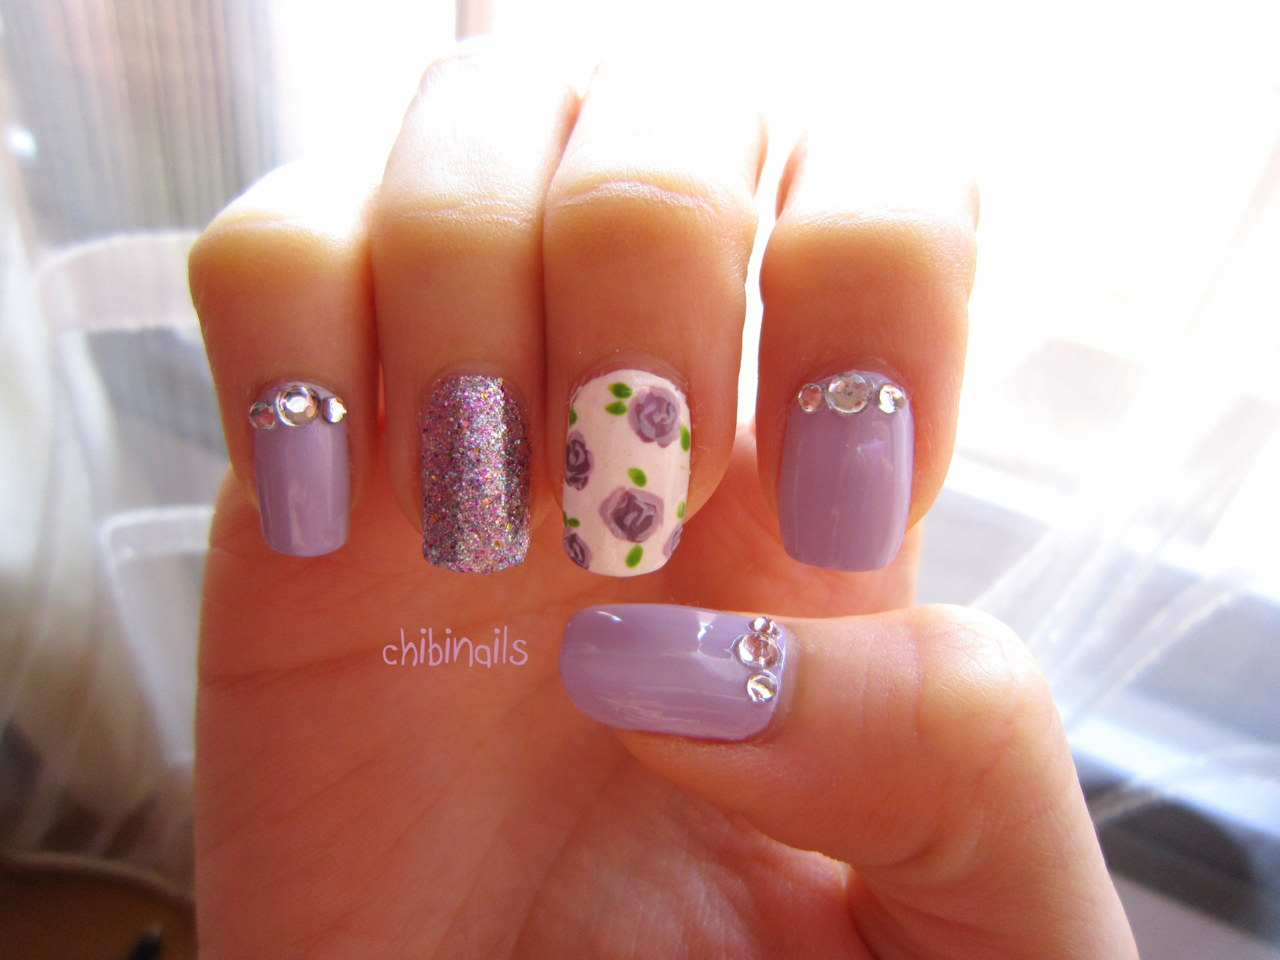 30 Images About Nails On We Heart It